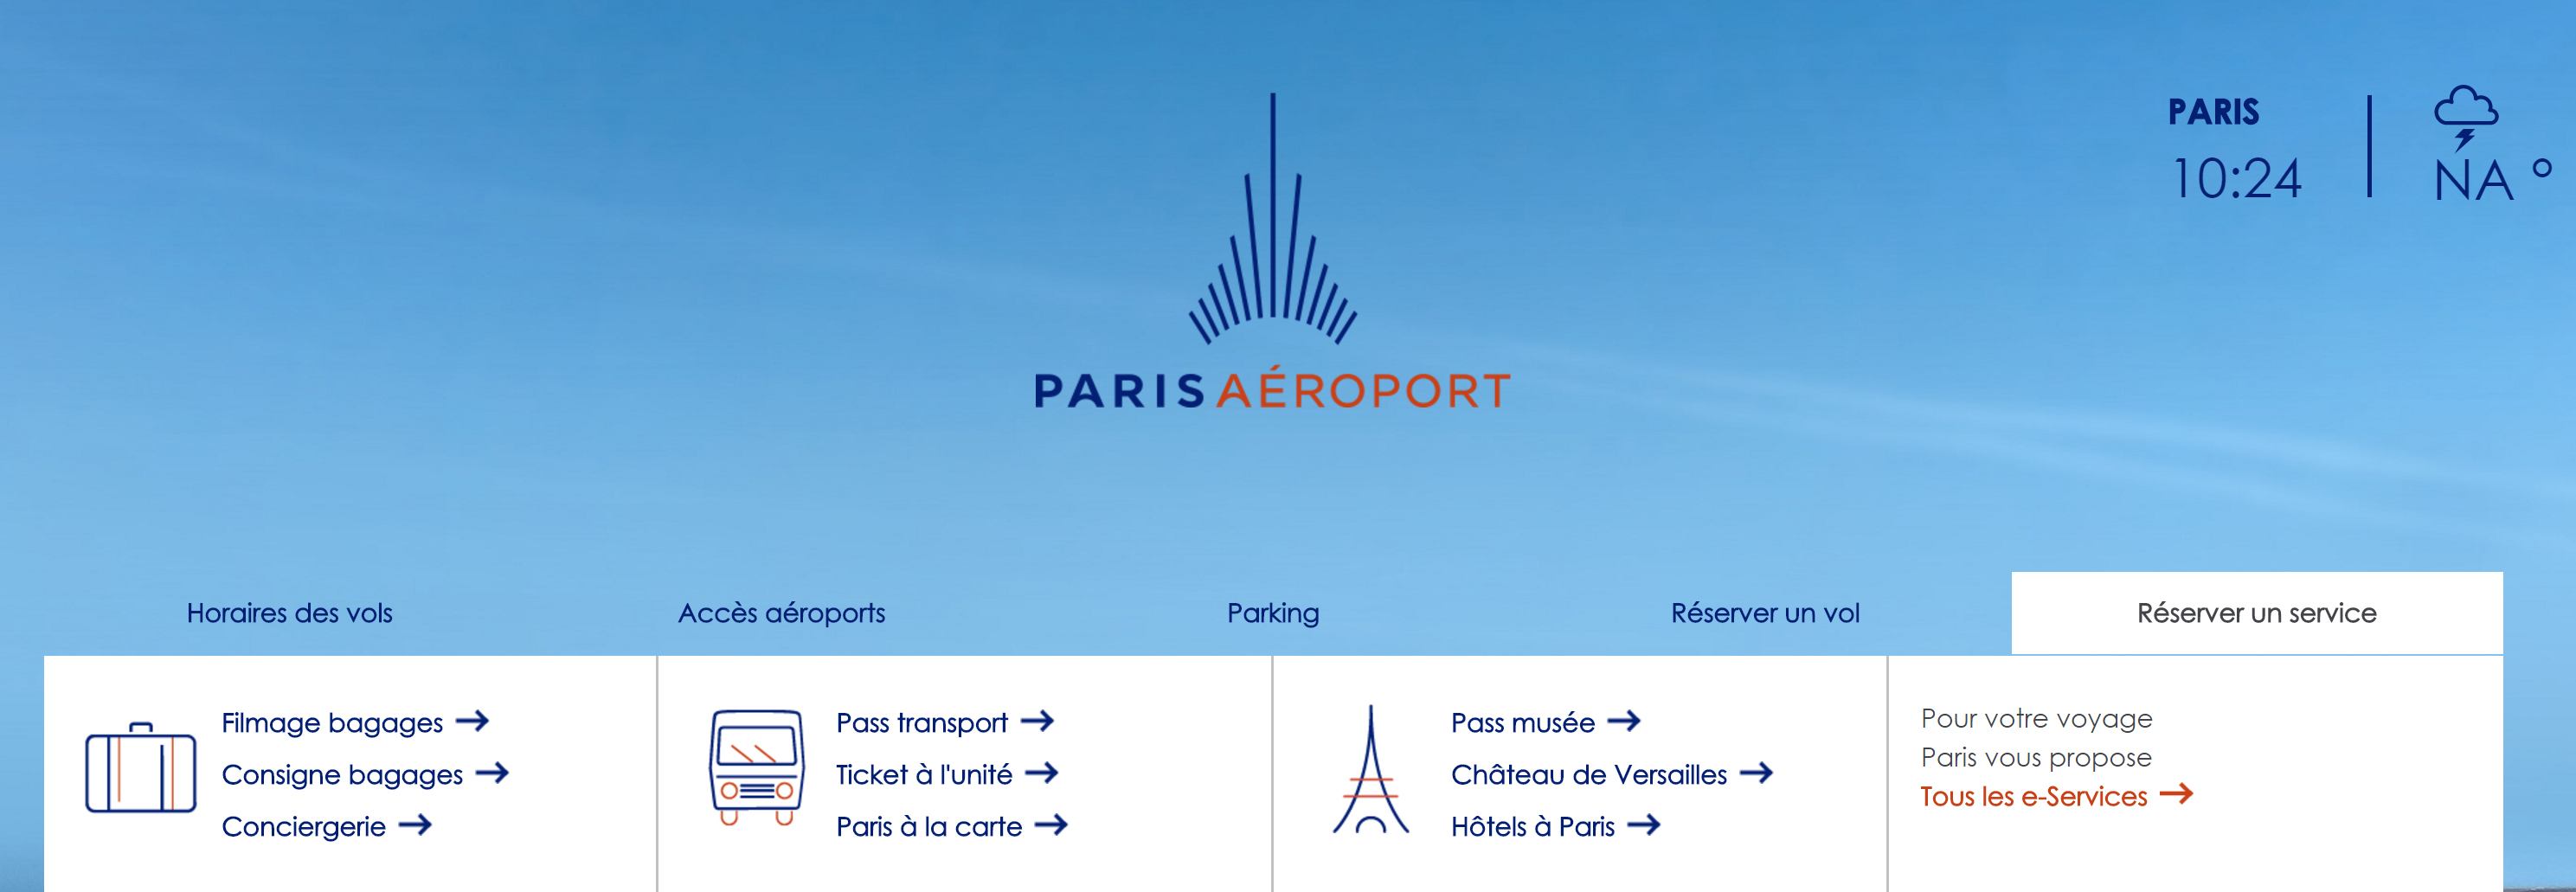 paris-aeroport-servicesjpg